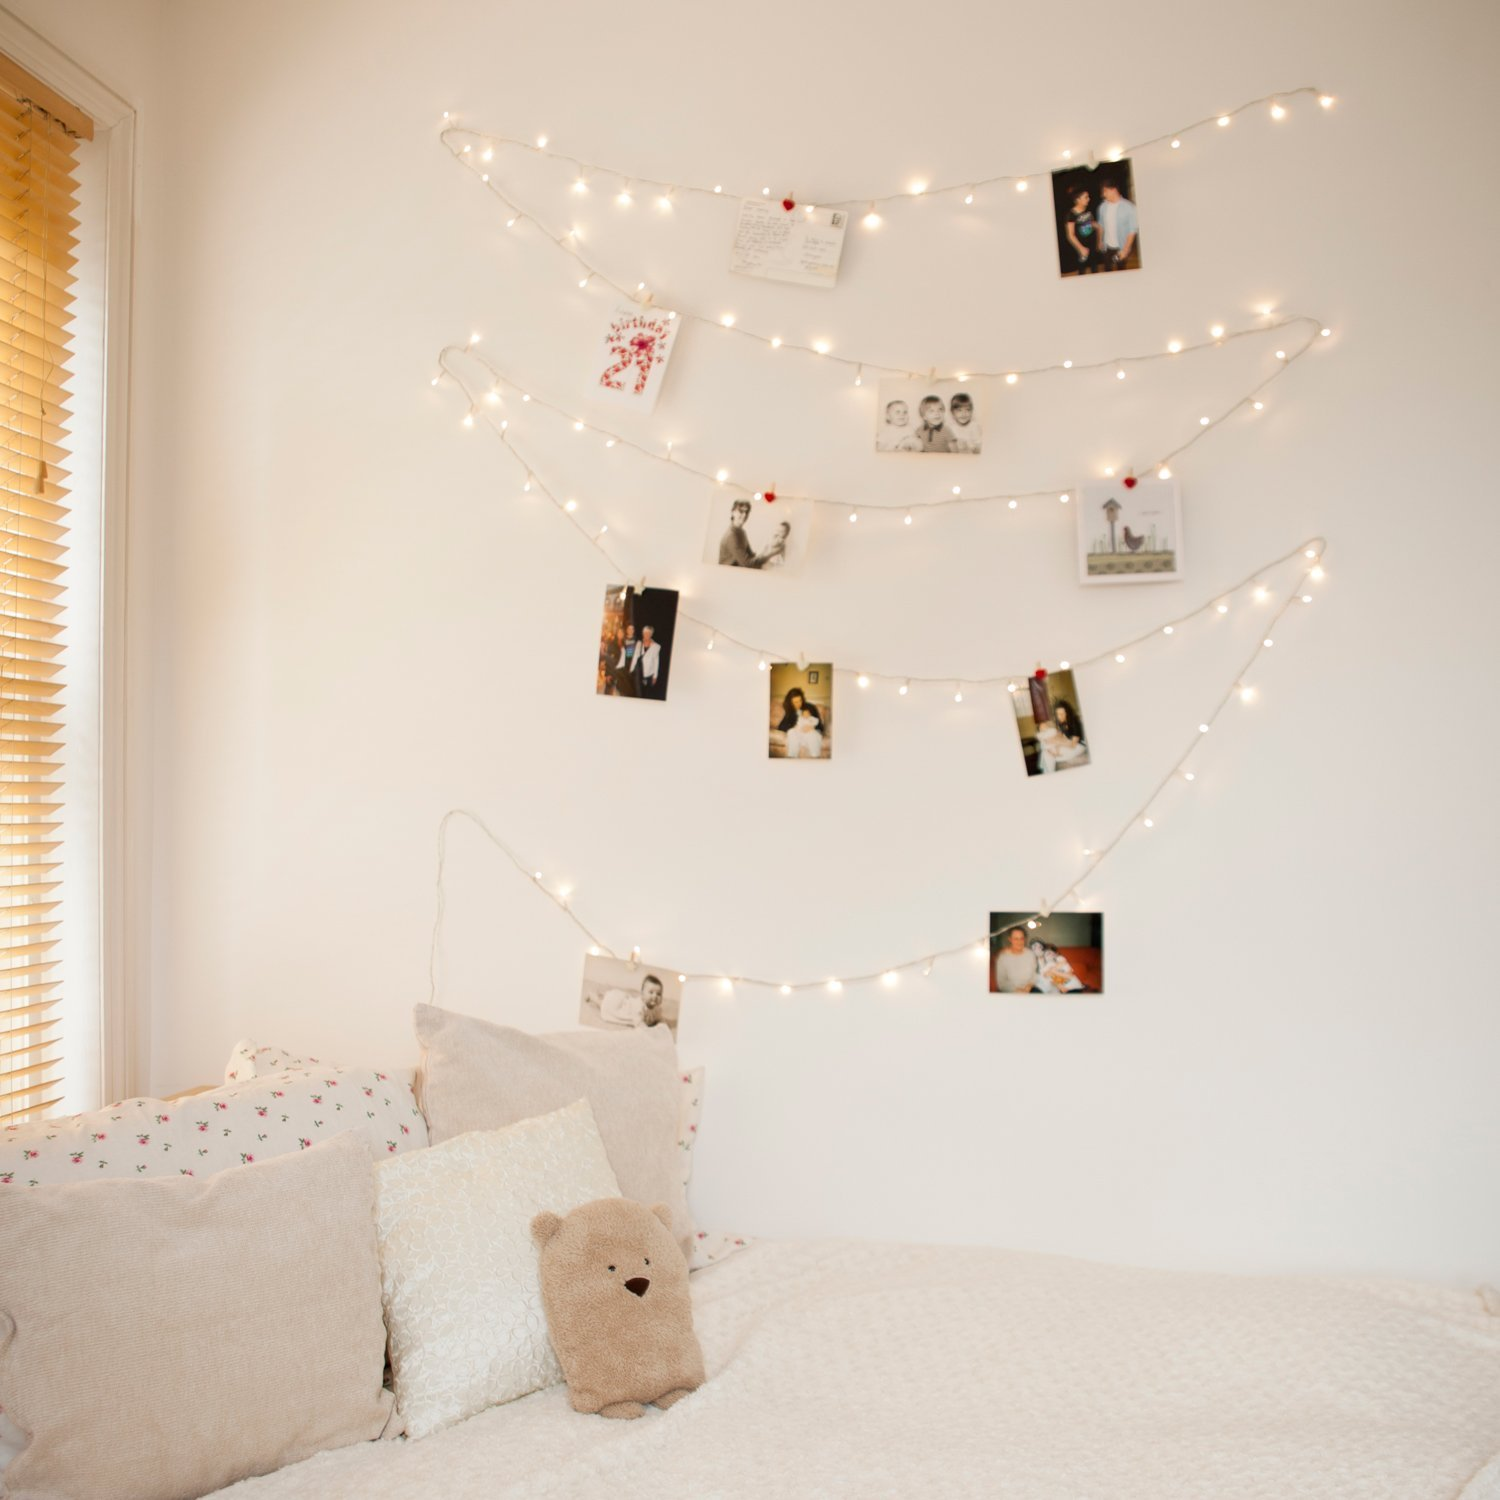 20 things under 20 to decorate your uni dorm room for Stuff to decorate room